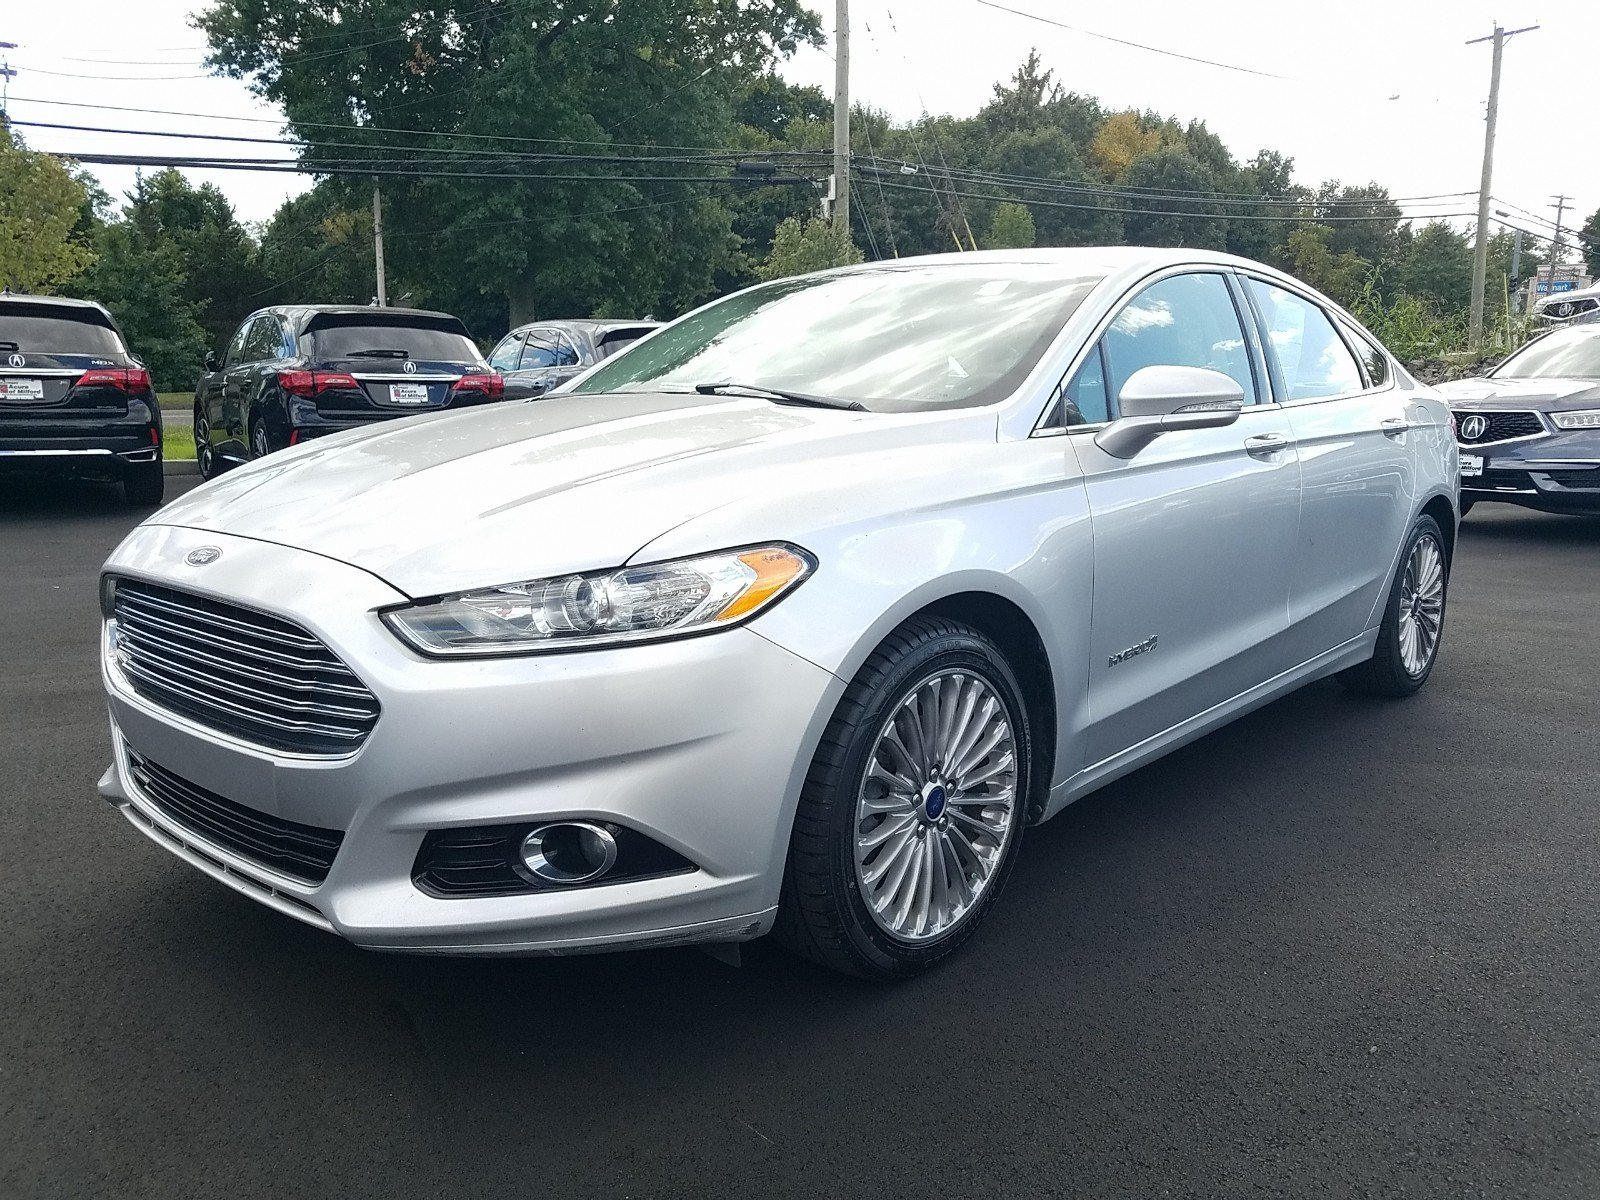 Pre-Owned 2014 Ford Fusion Titanium Hybrid